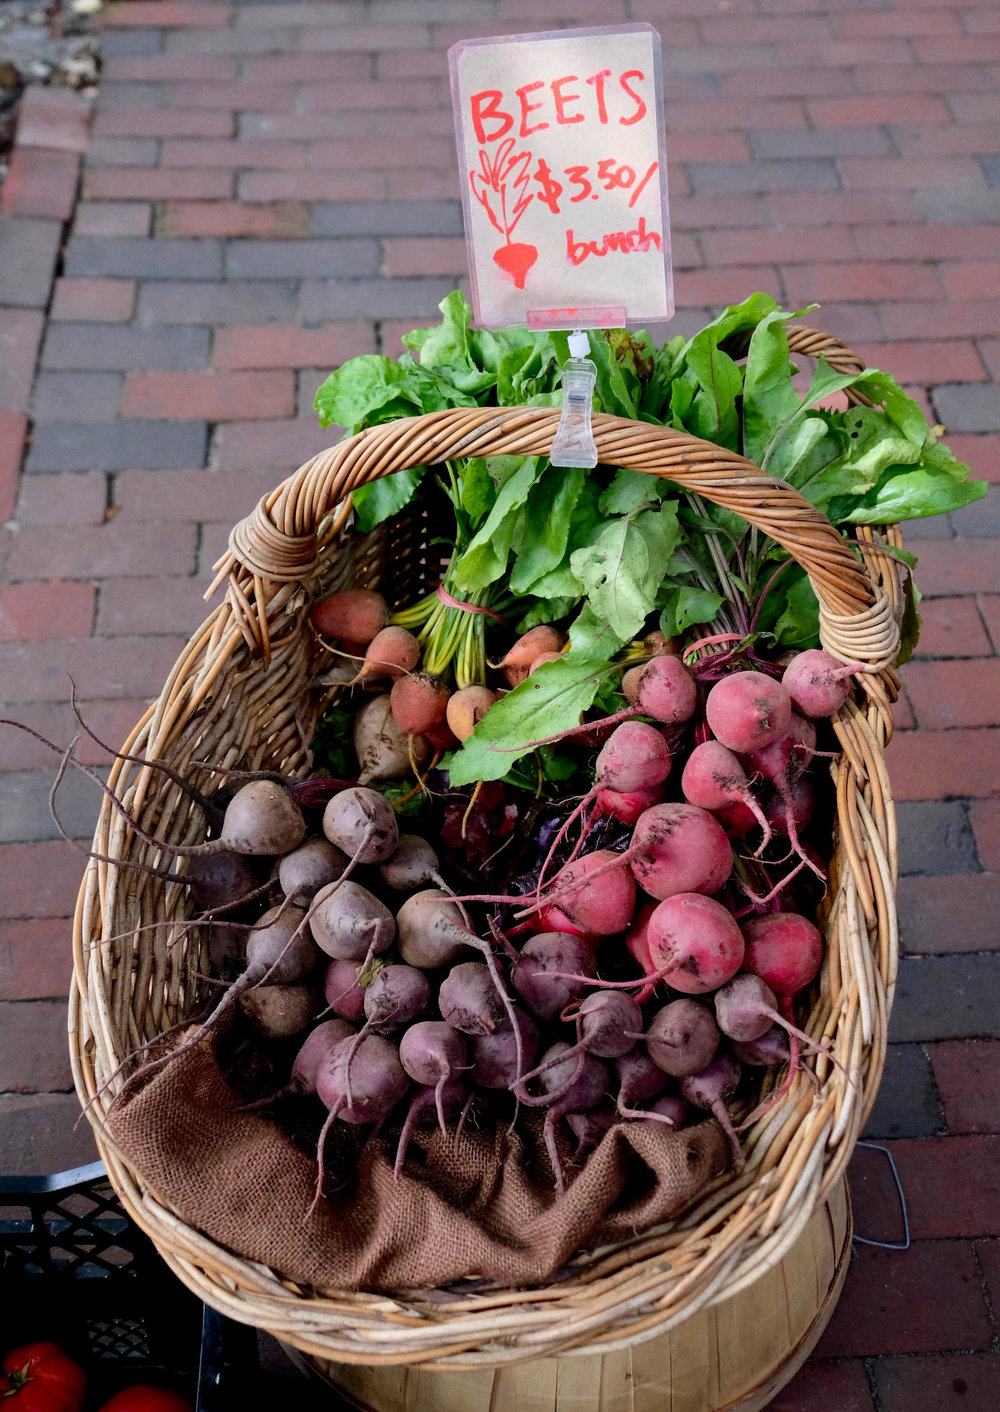 beets-nantucket-farmers-market-laurenschwaiger-style-travel-blog.jpg